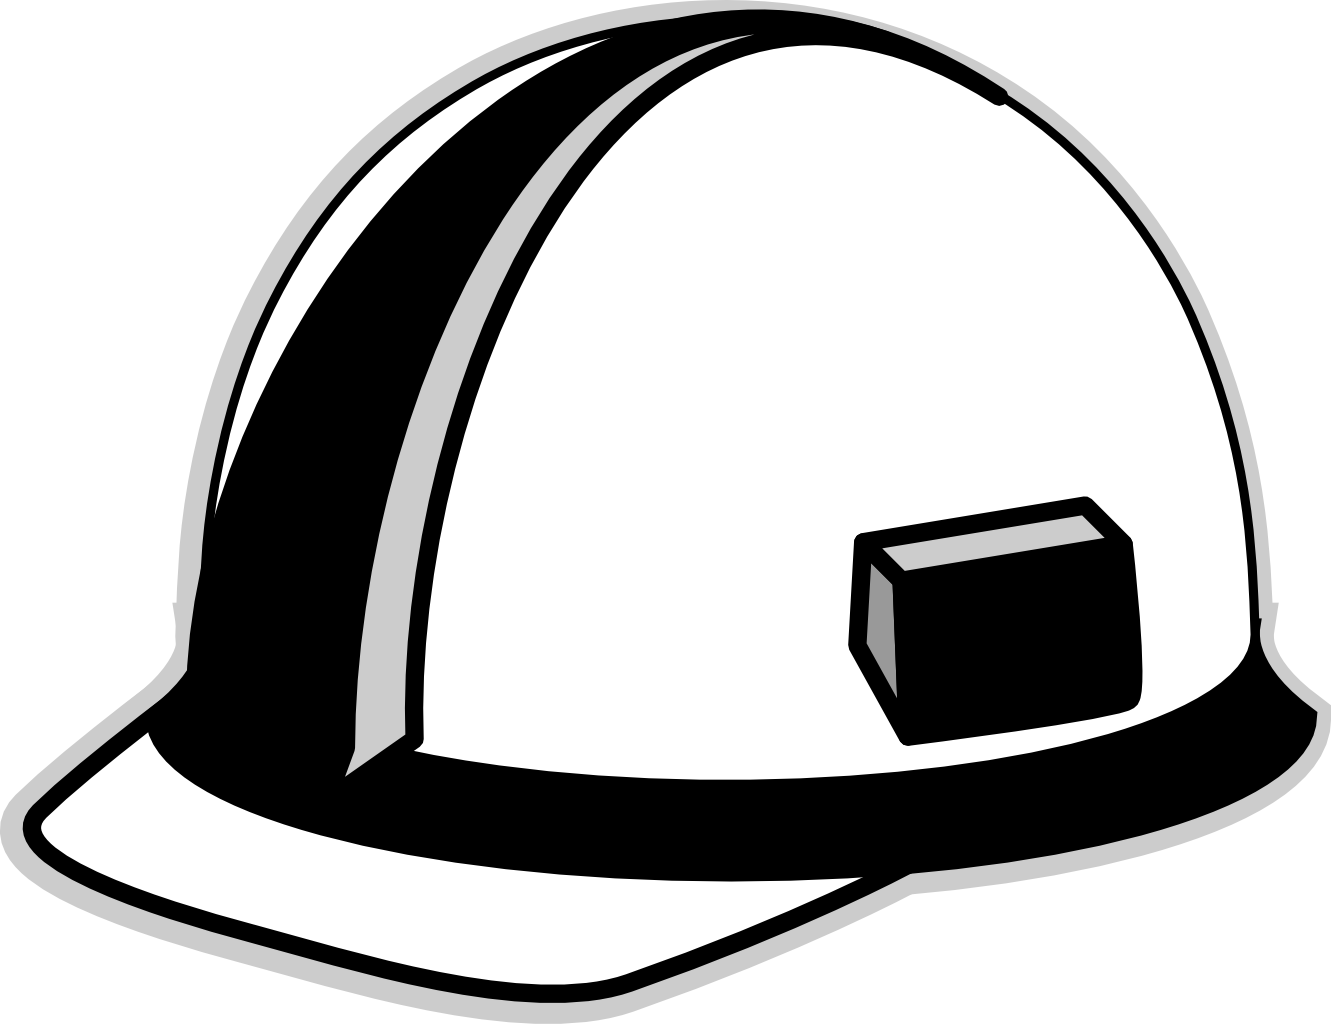 Coal miners hard hat clipart black and white clip art free library Free Hard Hat Art, Download Free Clip Art, Free Clip Art on Clipart ... clip art free library